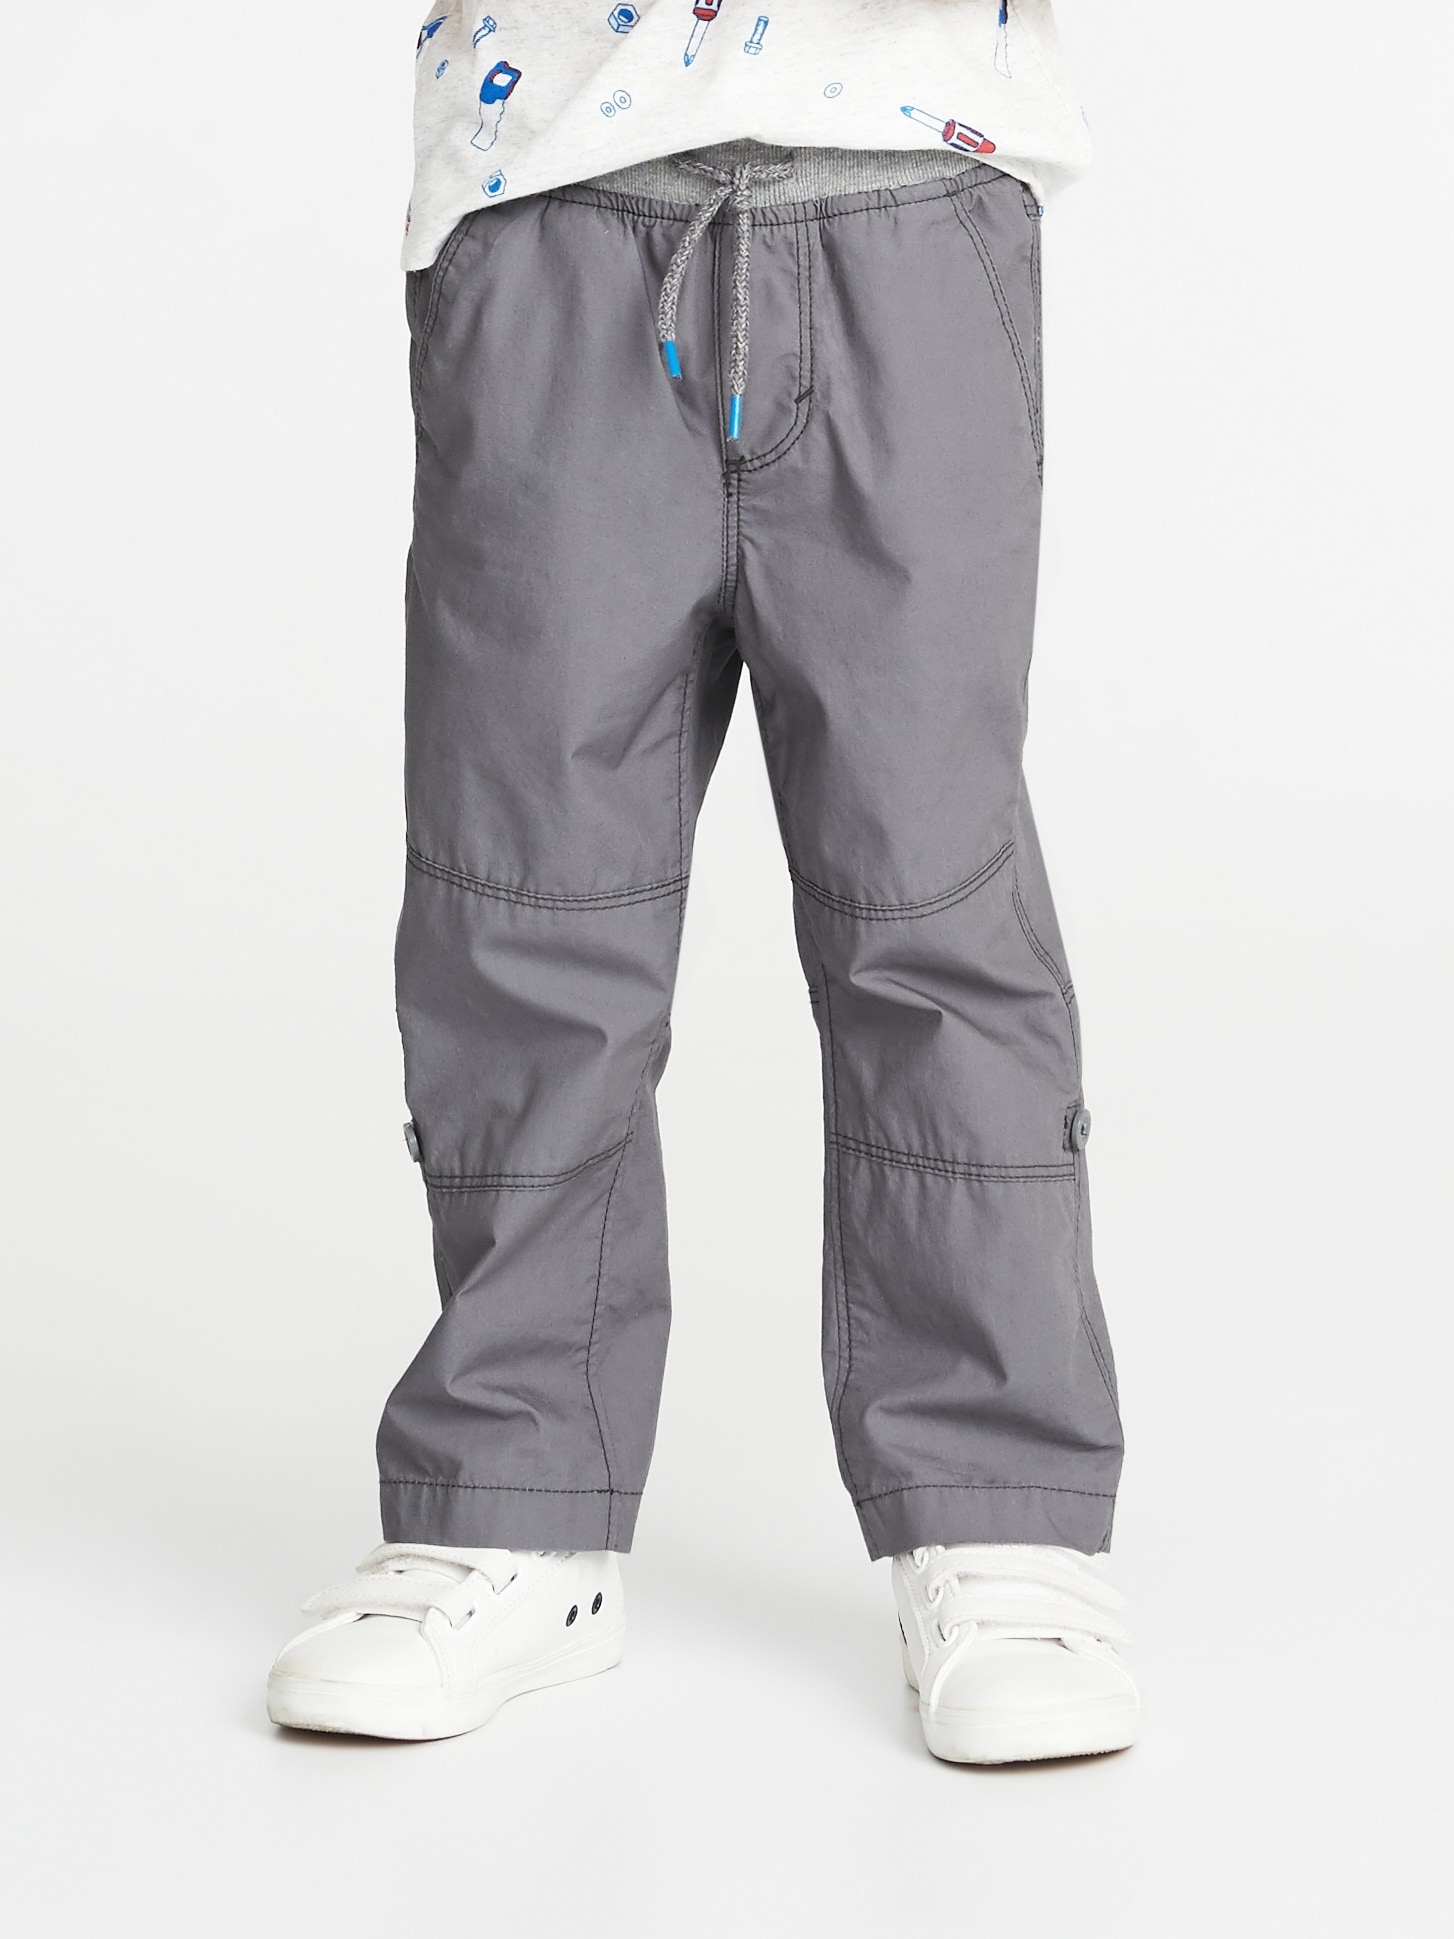 0eb589bed Rib-Waist Poplin Roll-Up Pants for Toddler Boys | Old Navy